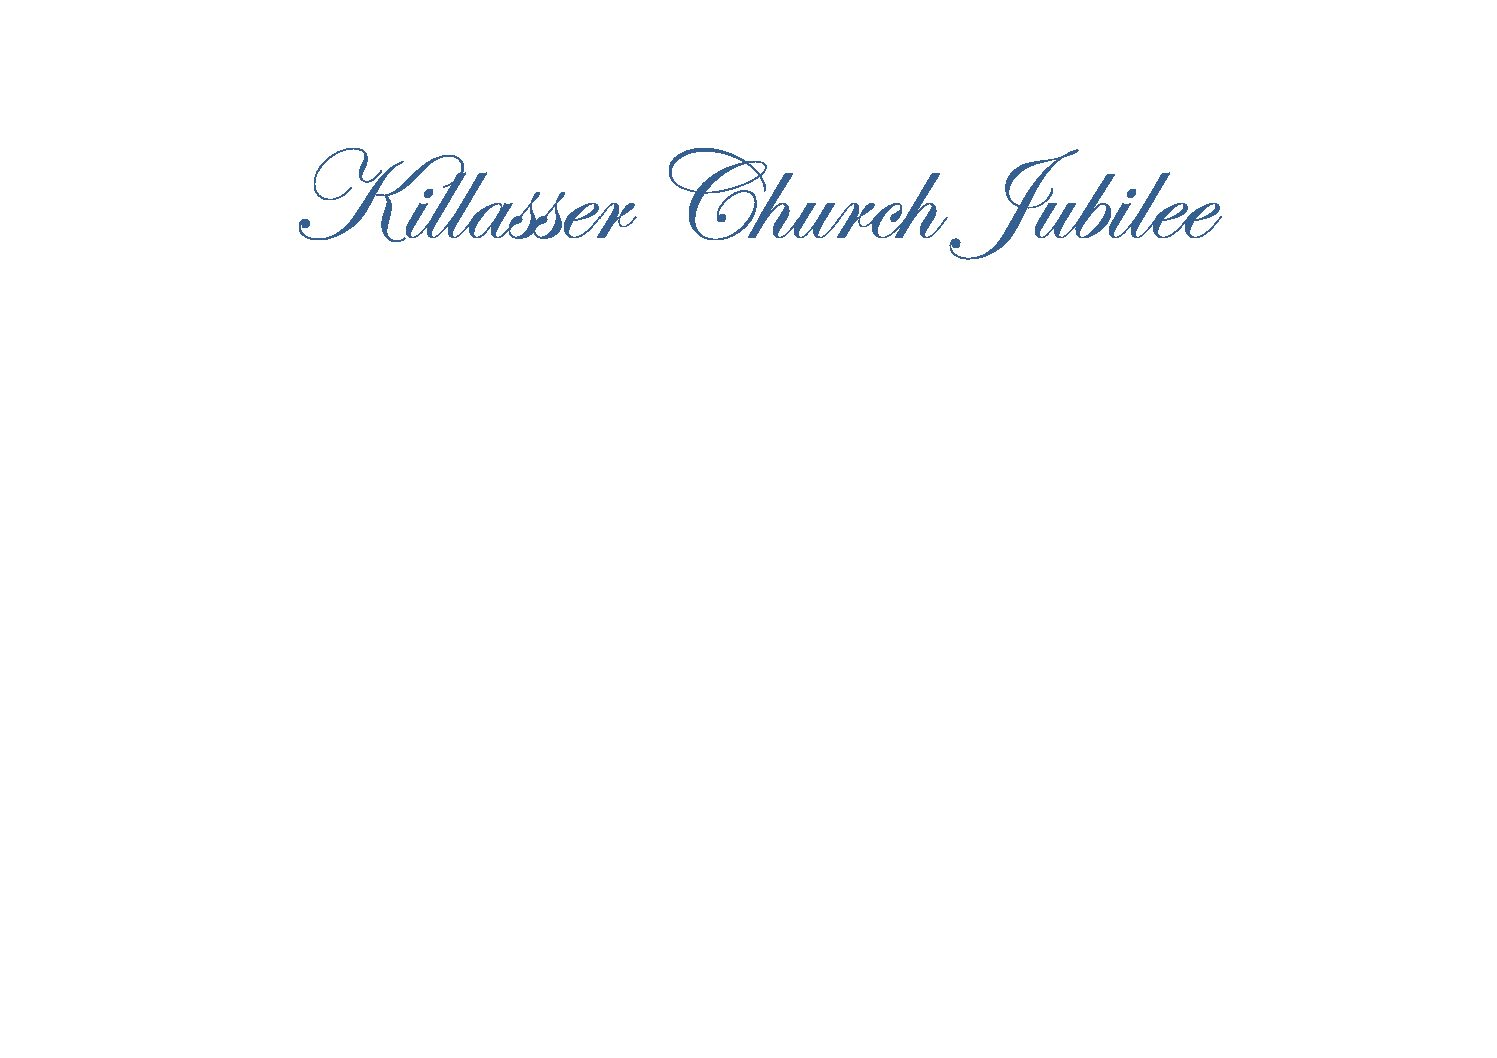 Killasser Church Celebrates 150 Years